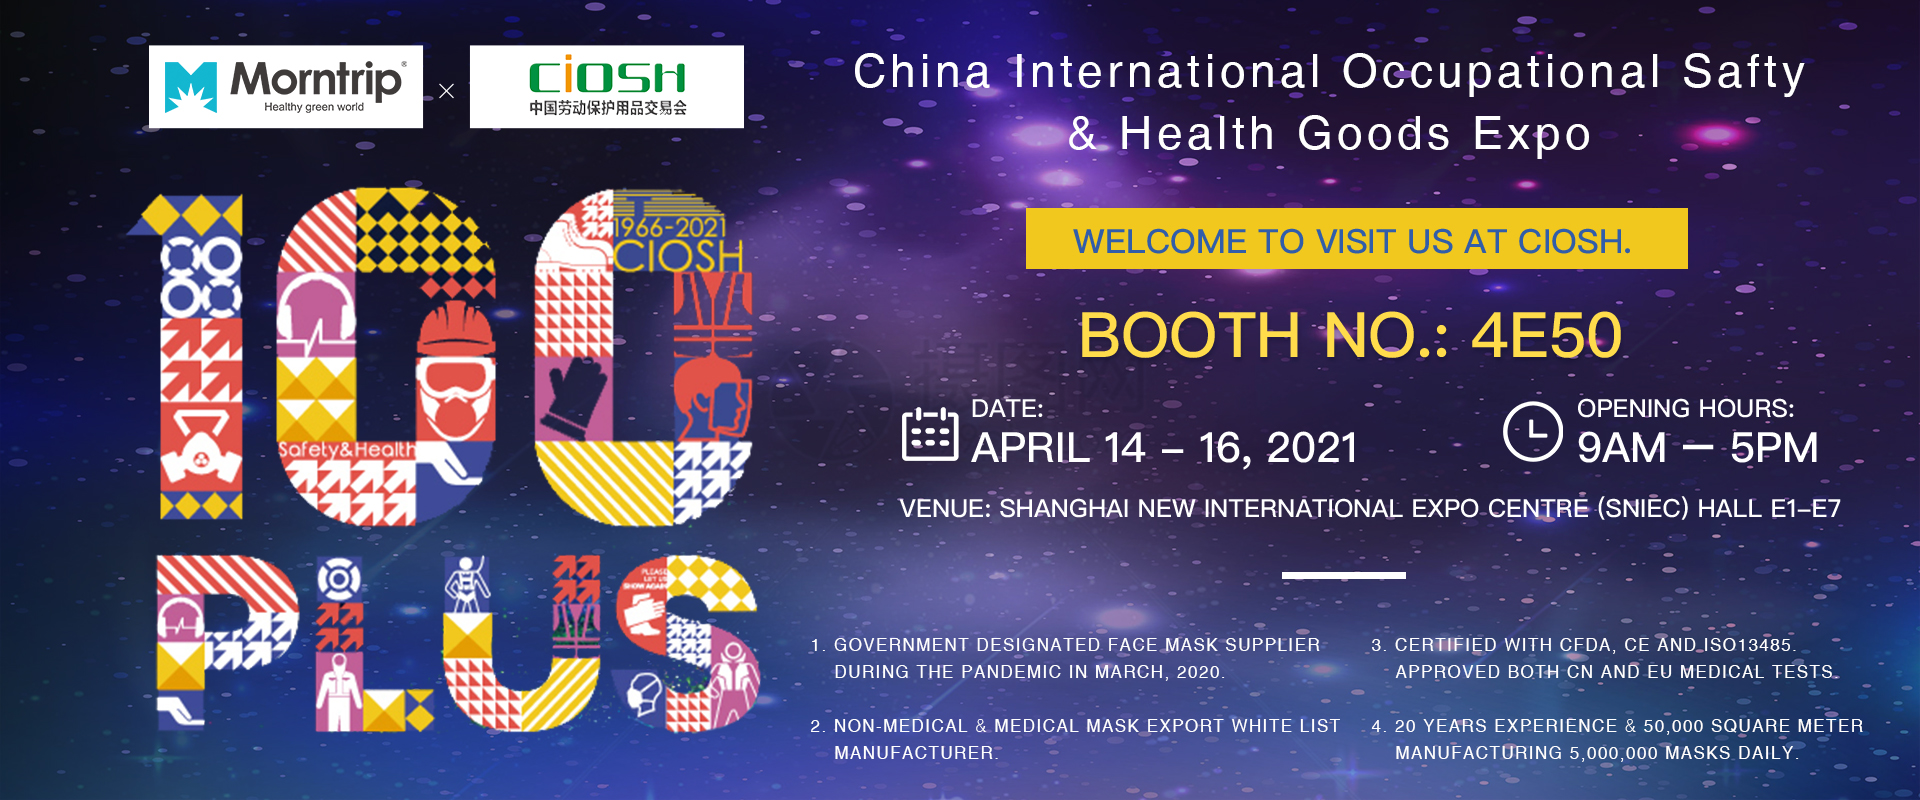 China International Occupational Safety & Health Goods Expro Invitation